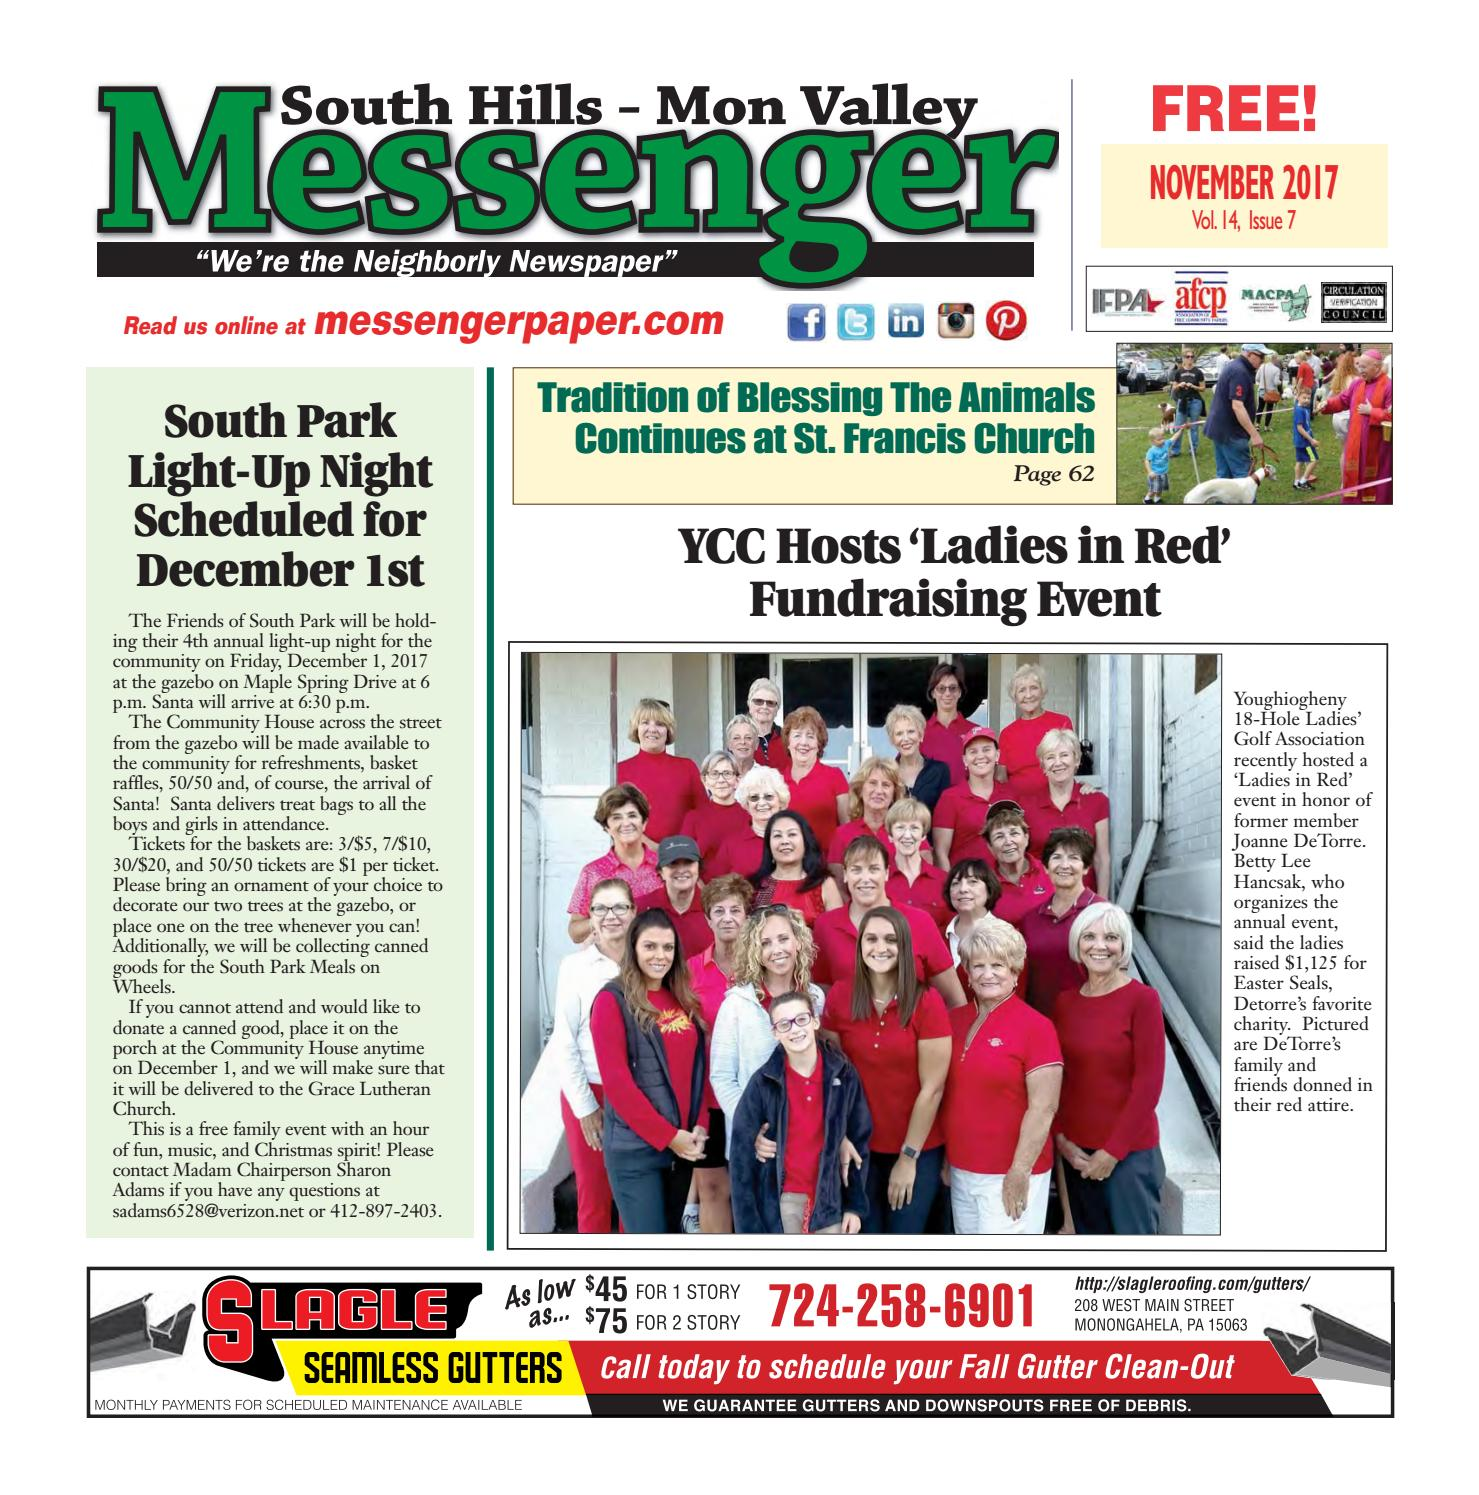 91596cee1 South Hills Mon Valley Messenger November 2017 by South Hills Mon Valley  Messenger - issuu